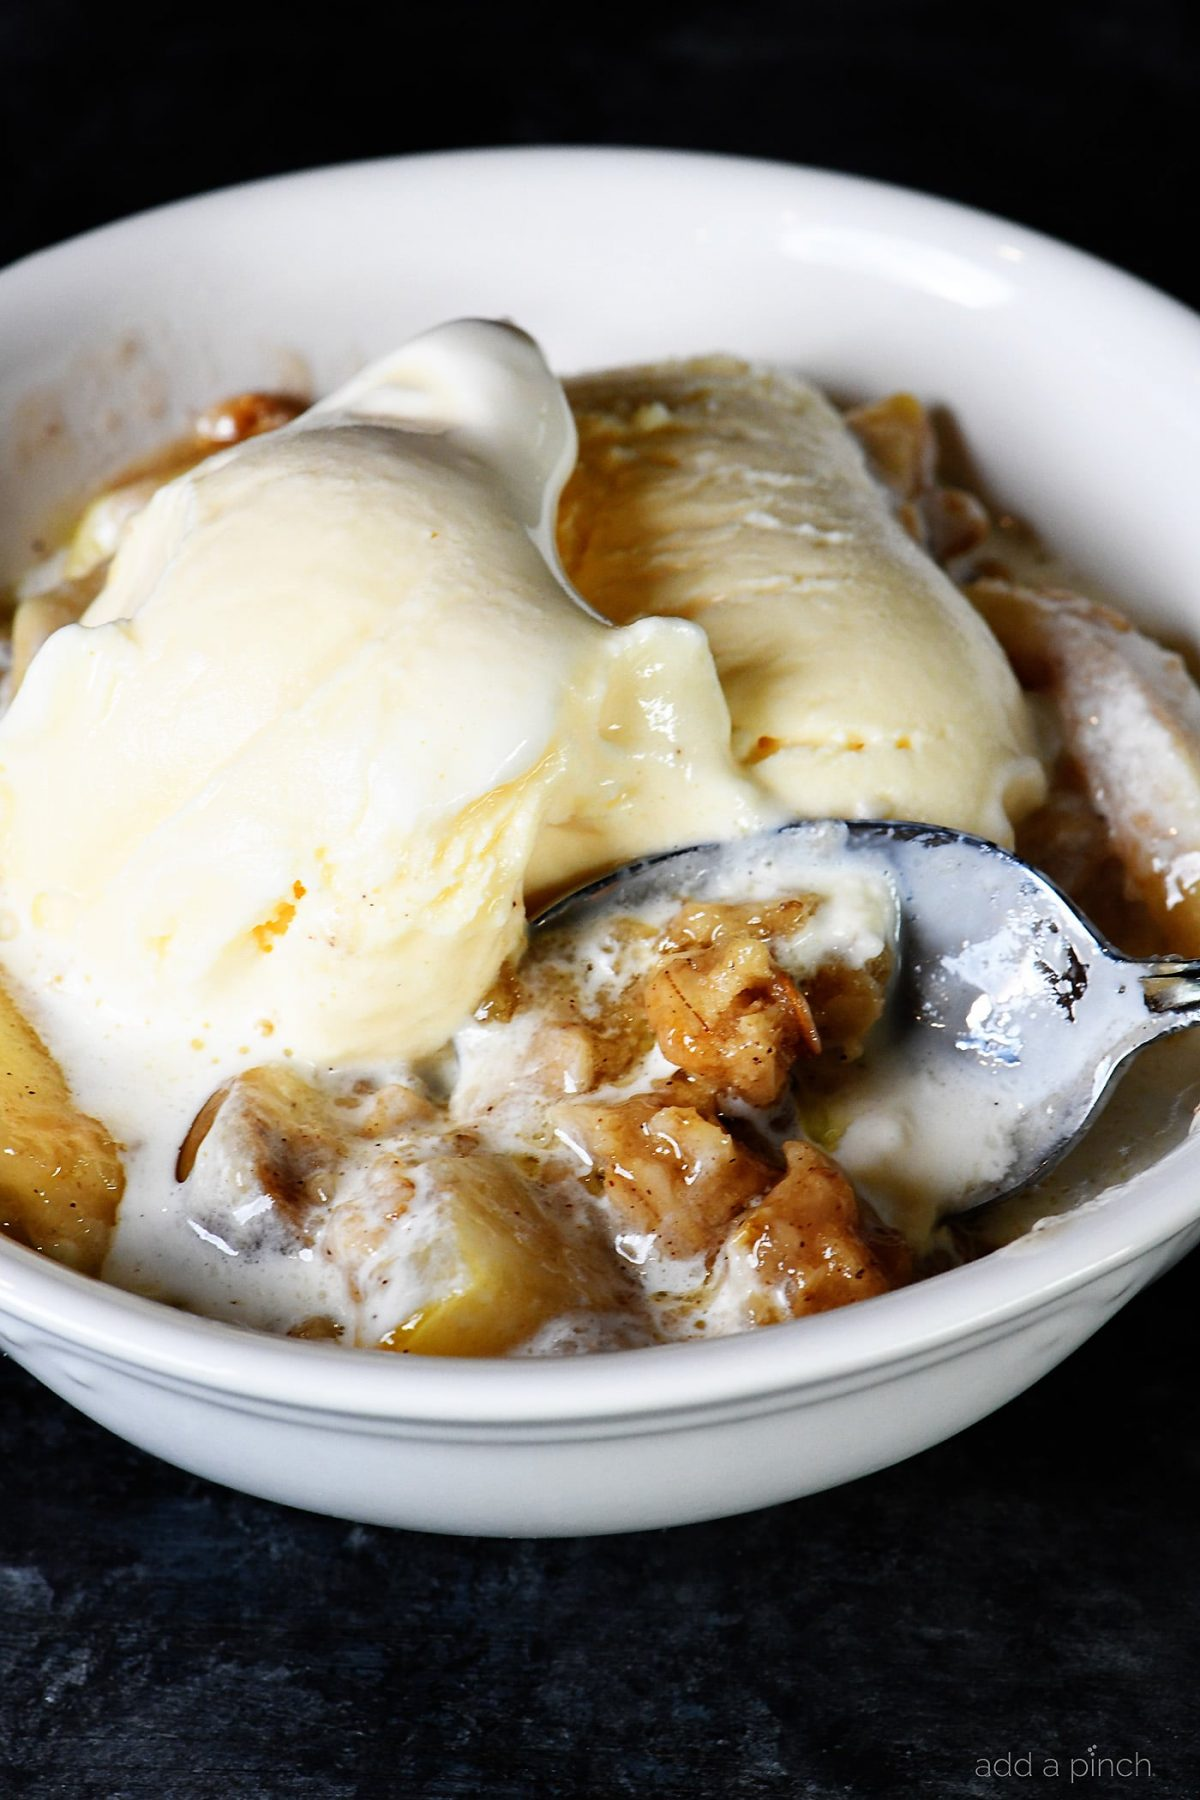 photograph of dessert with vanilla ice cream in a white bowl.